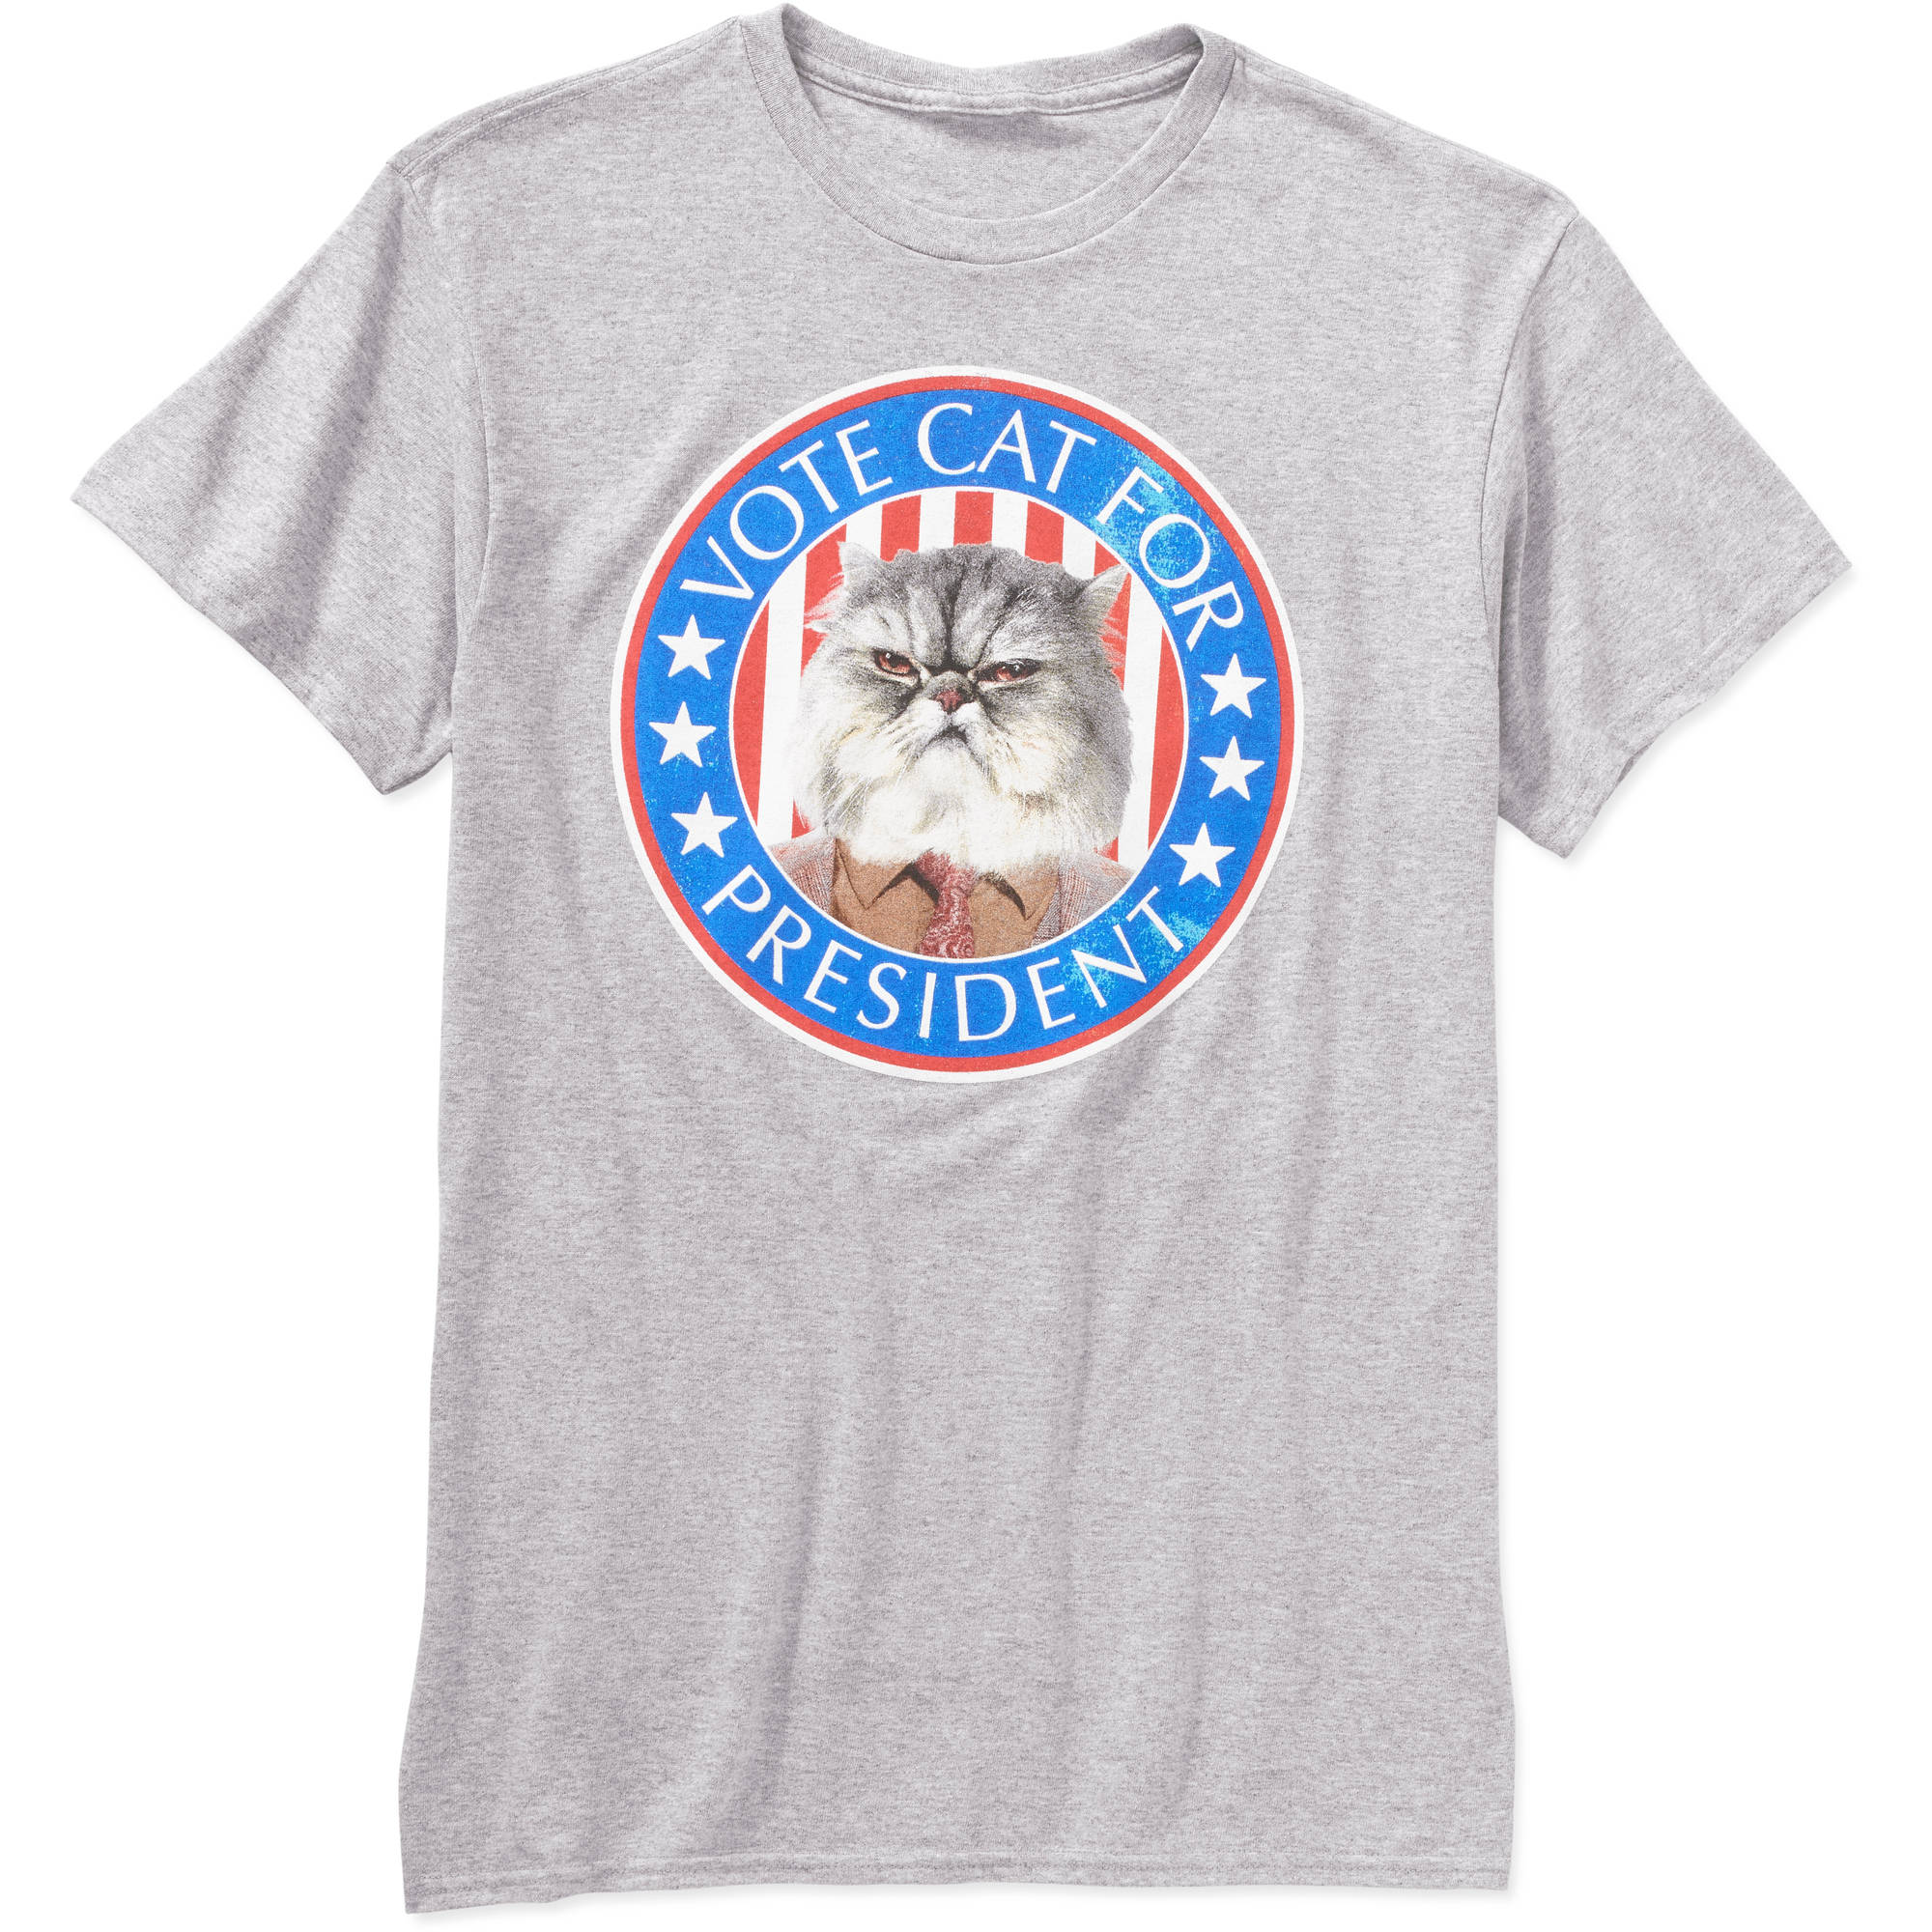 Vote Cat for President Men's Graphic Tee